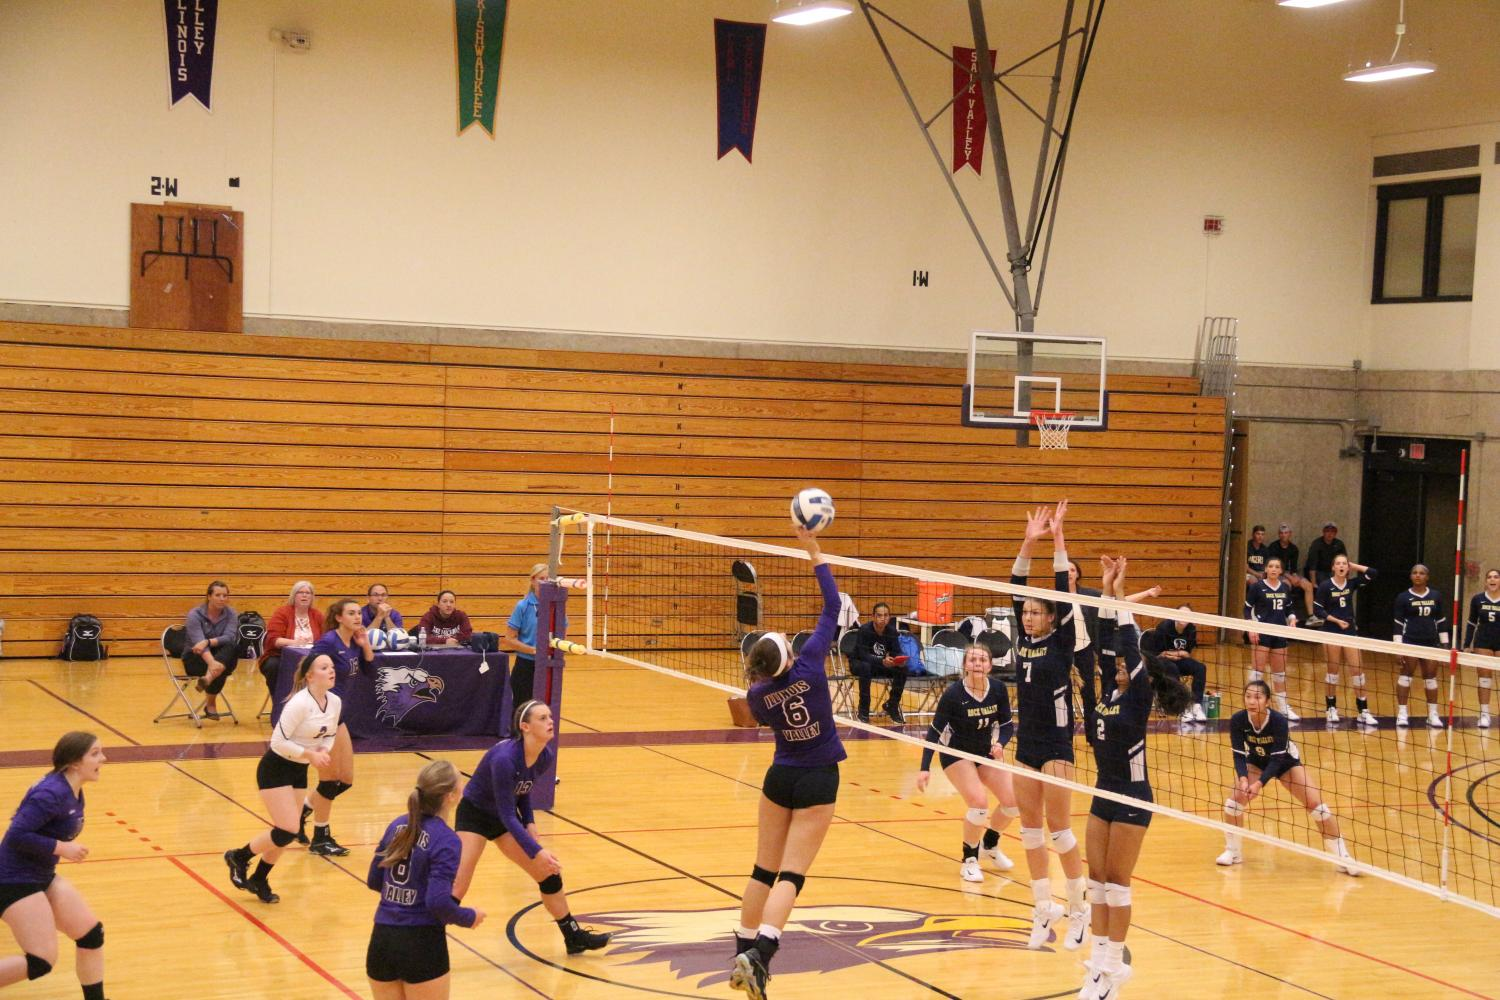 Freshman outside hitter Kaitlyn Edgcomb looks to spike it home against Rock Valley.